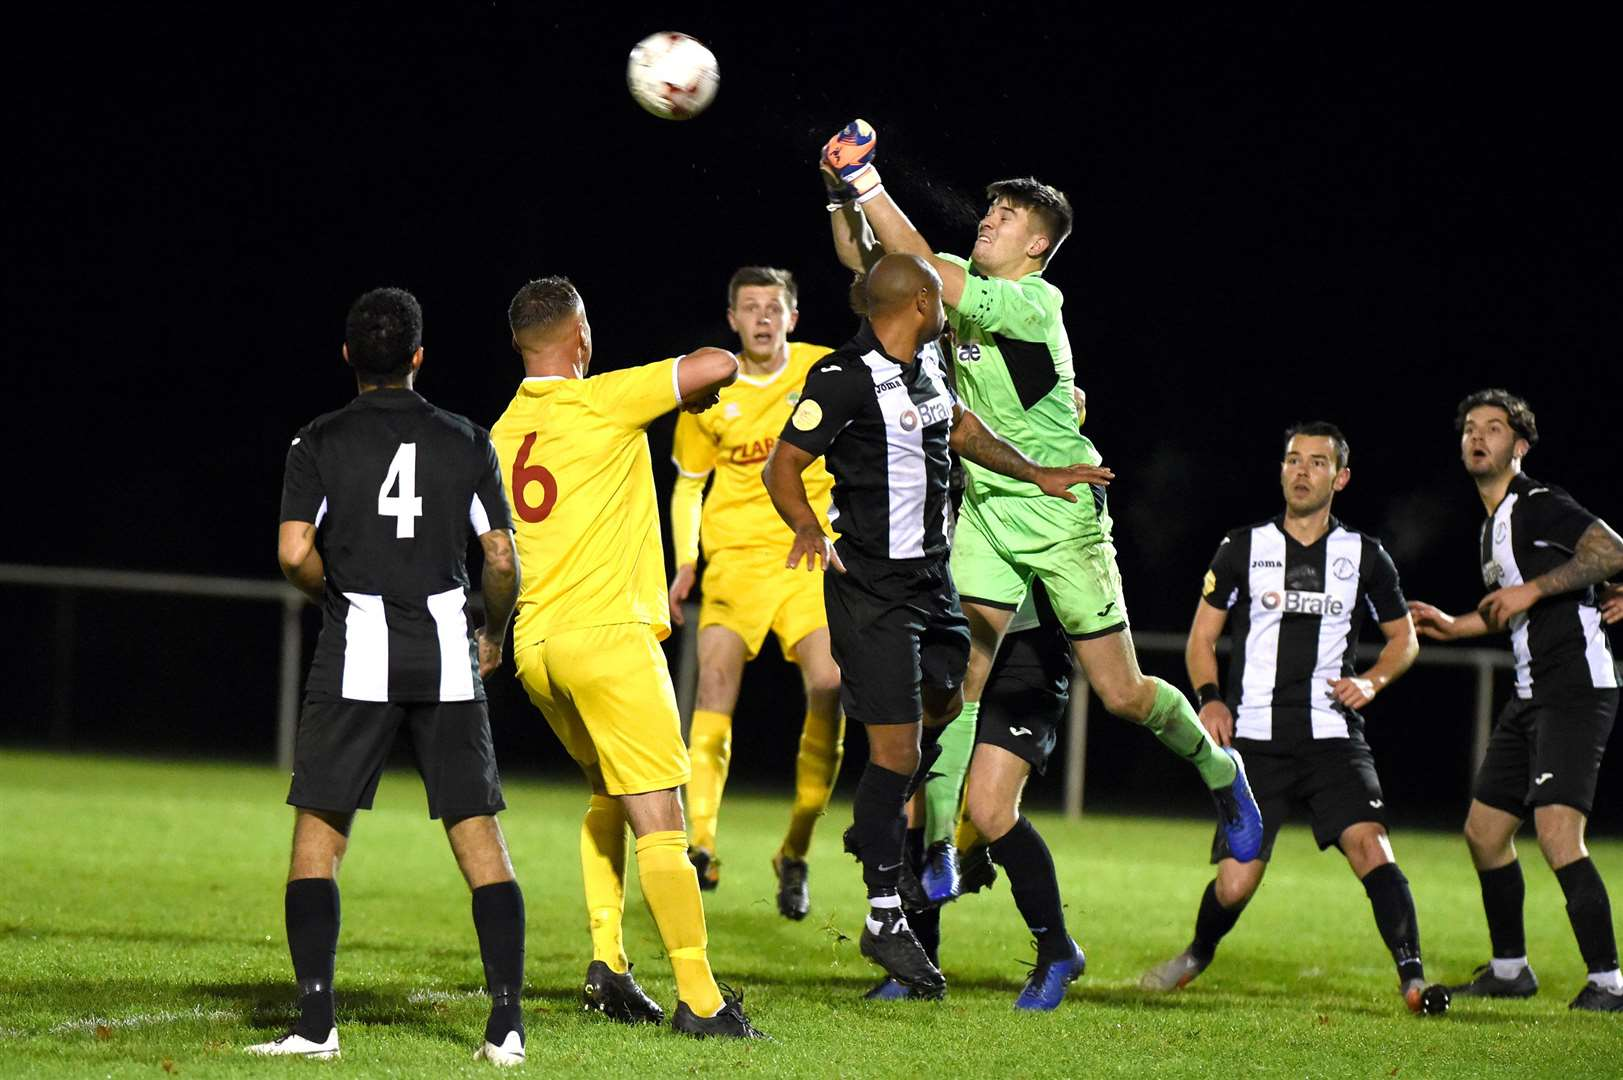 FOOTBALL - Walsham Le Willows v Woodbridge Town..Pictured: ...PICTURE: Mecha Morton .... (21057435)